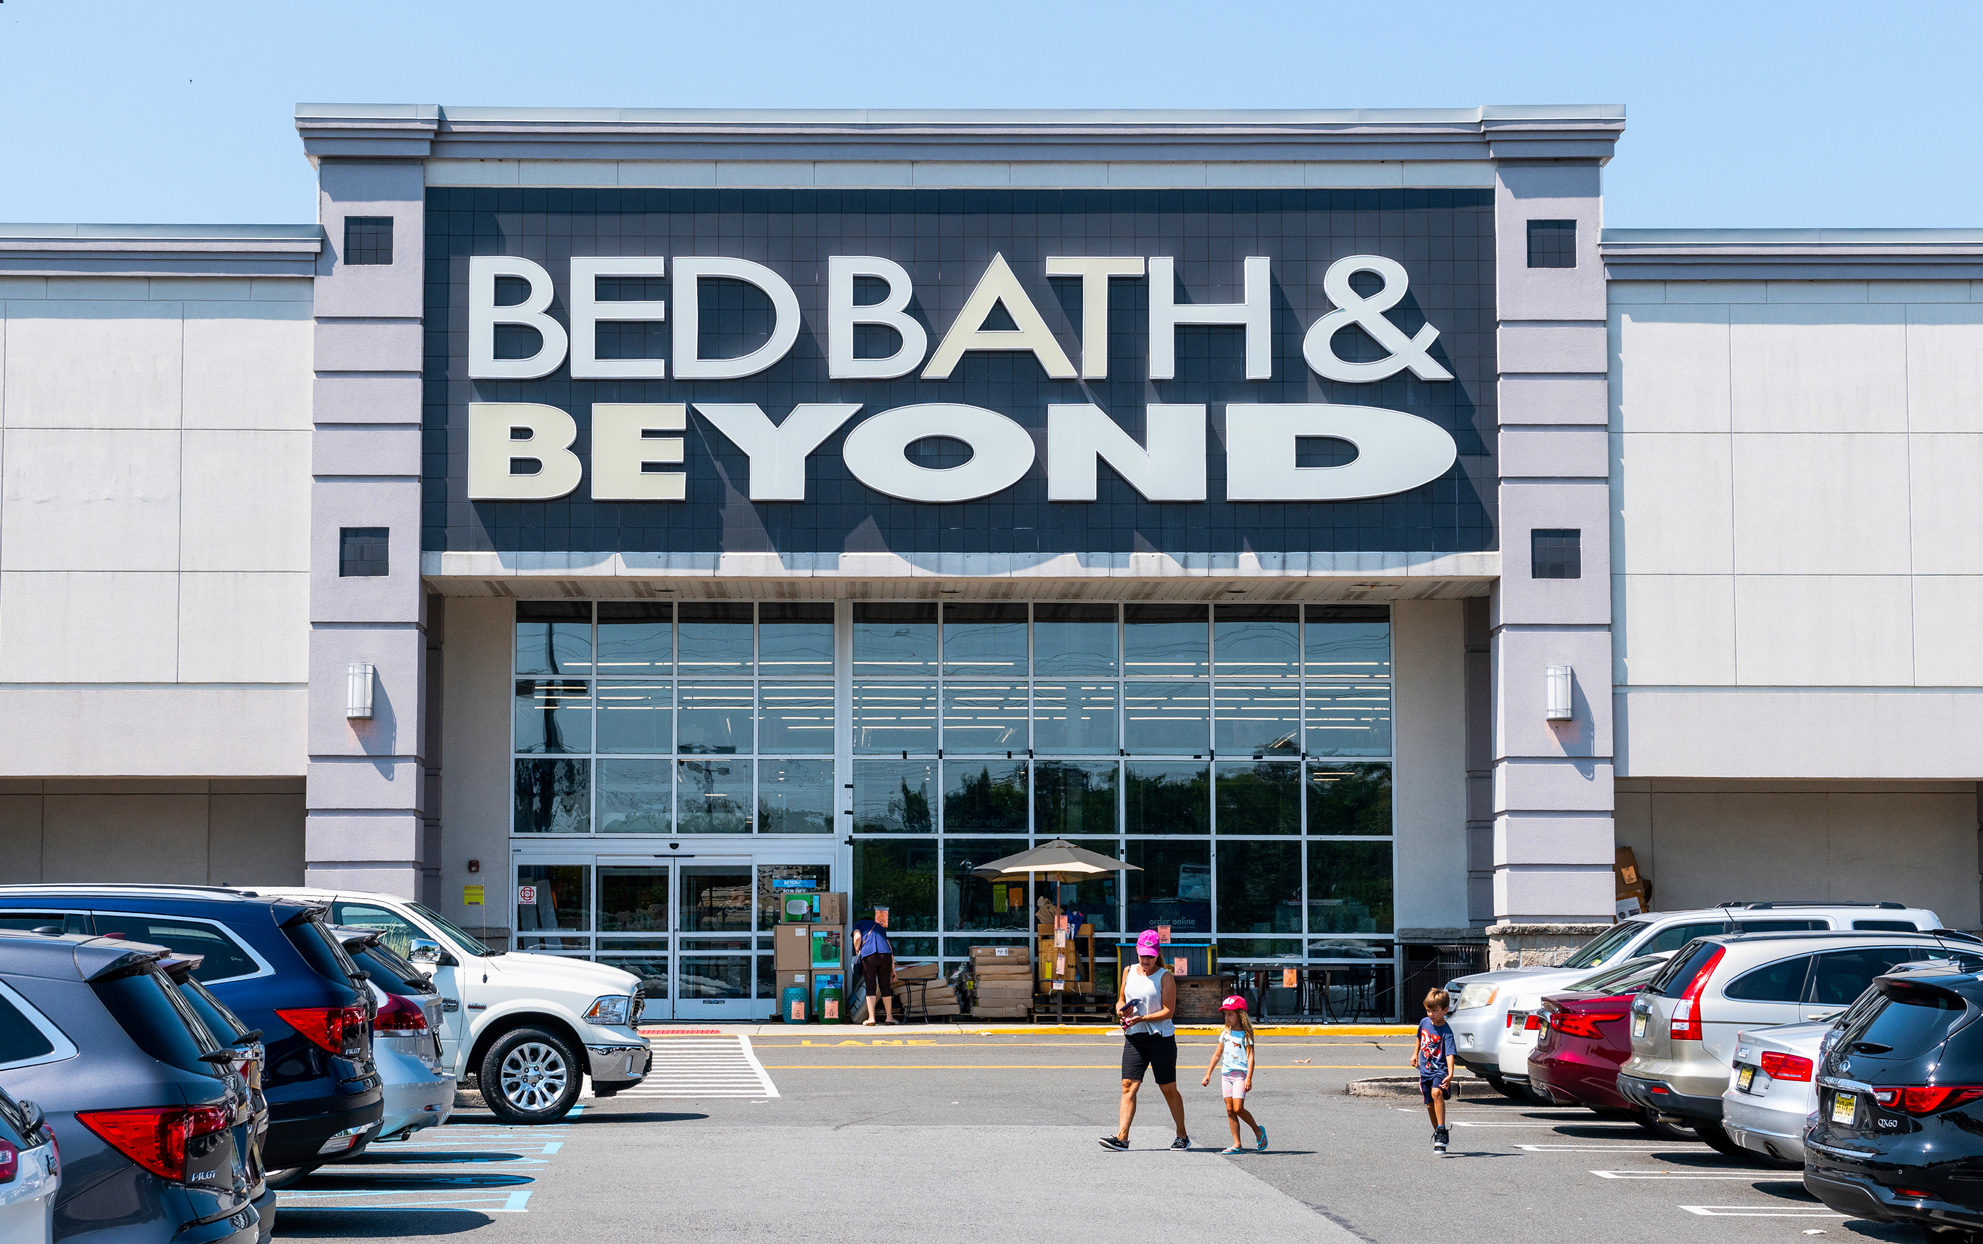 Bed Bath & Beyond storefront